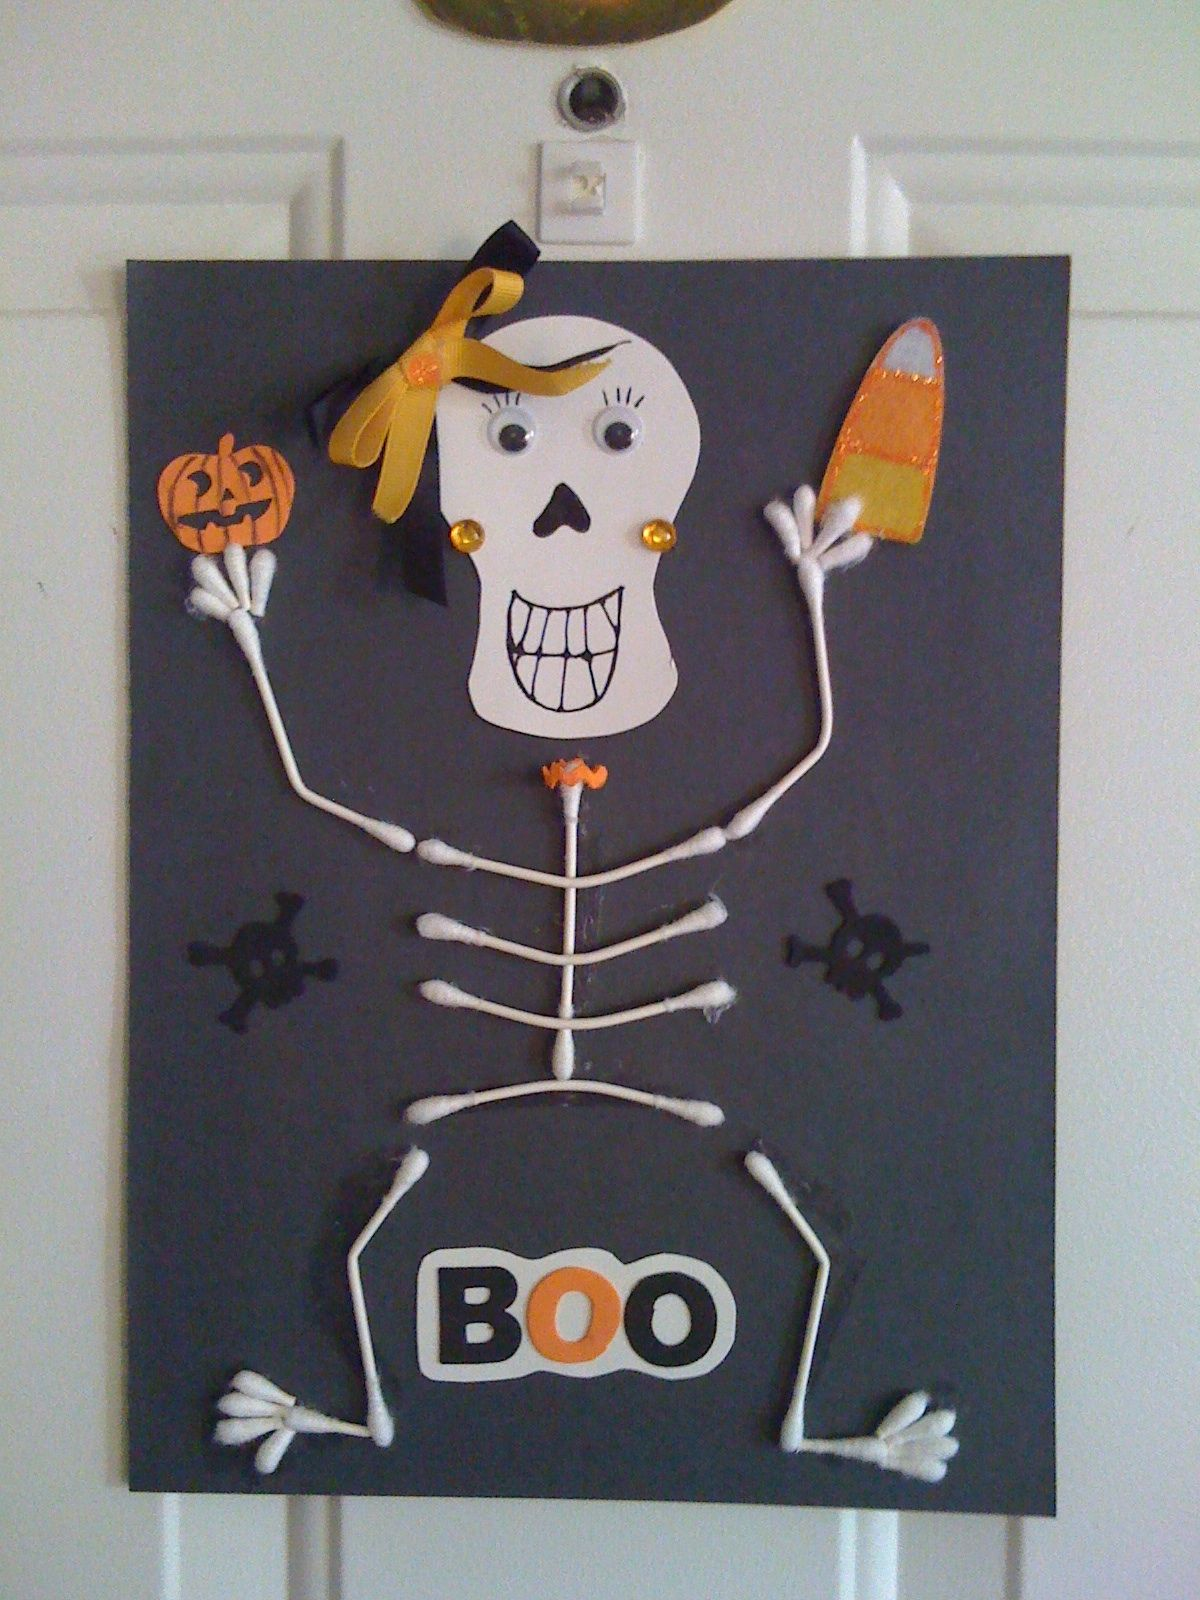 Cotton swab skeleton made with Q Tips and misc. Halloween craft, Halloween  crafts for kids, preschool, kids craft